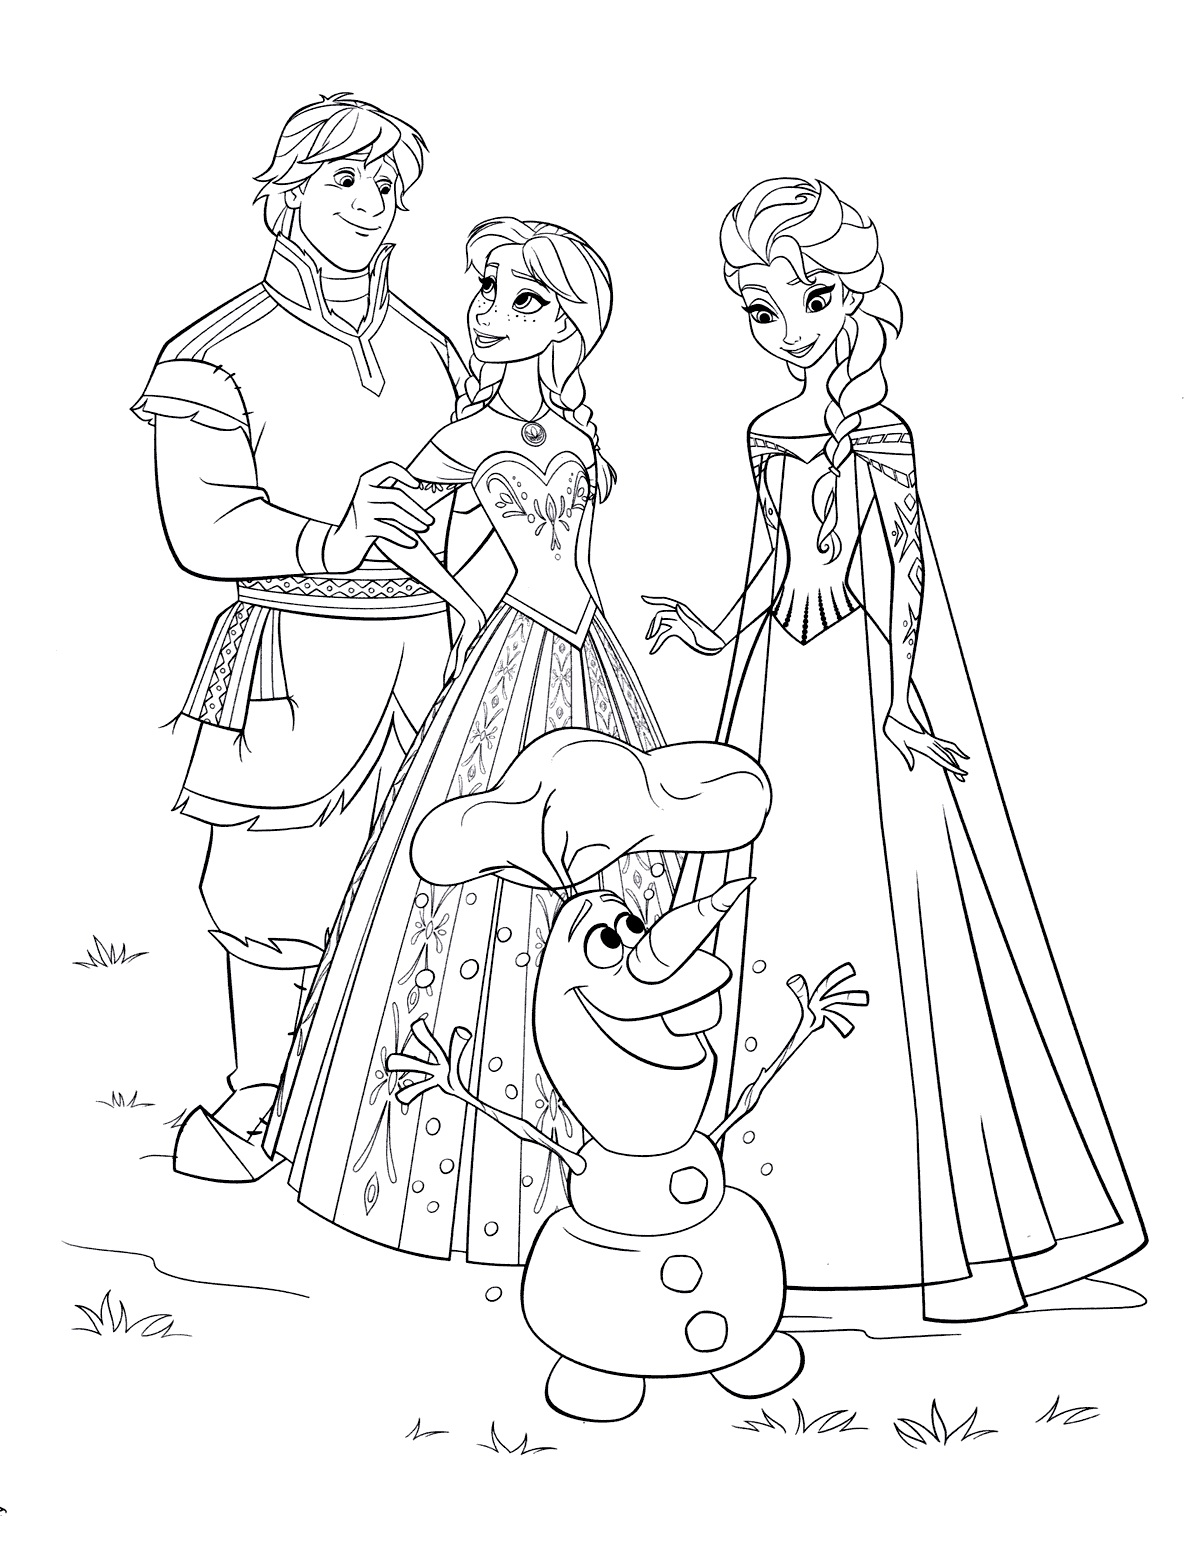 Coloring pages Elsa. Print for free for children, 60 pictures